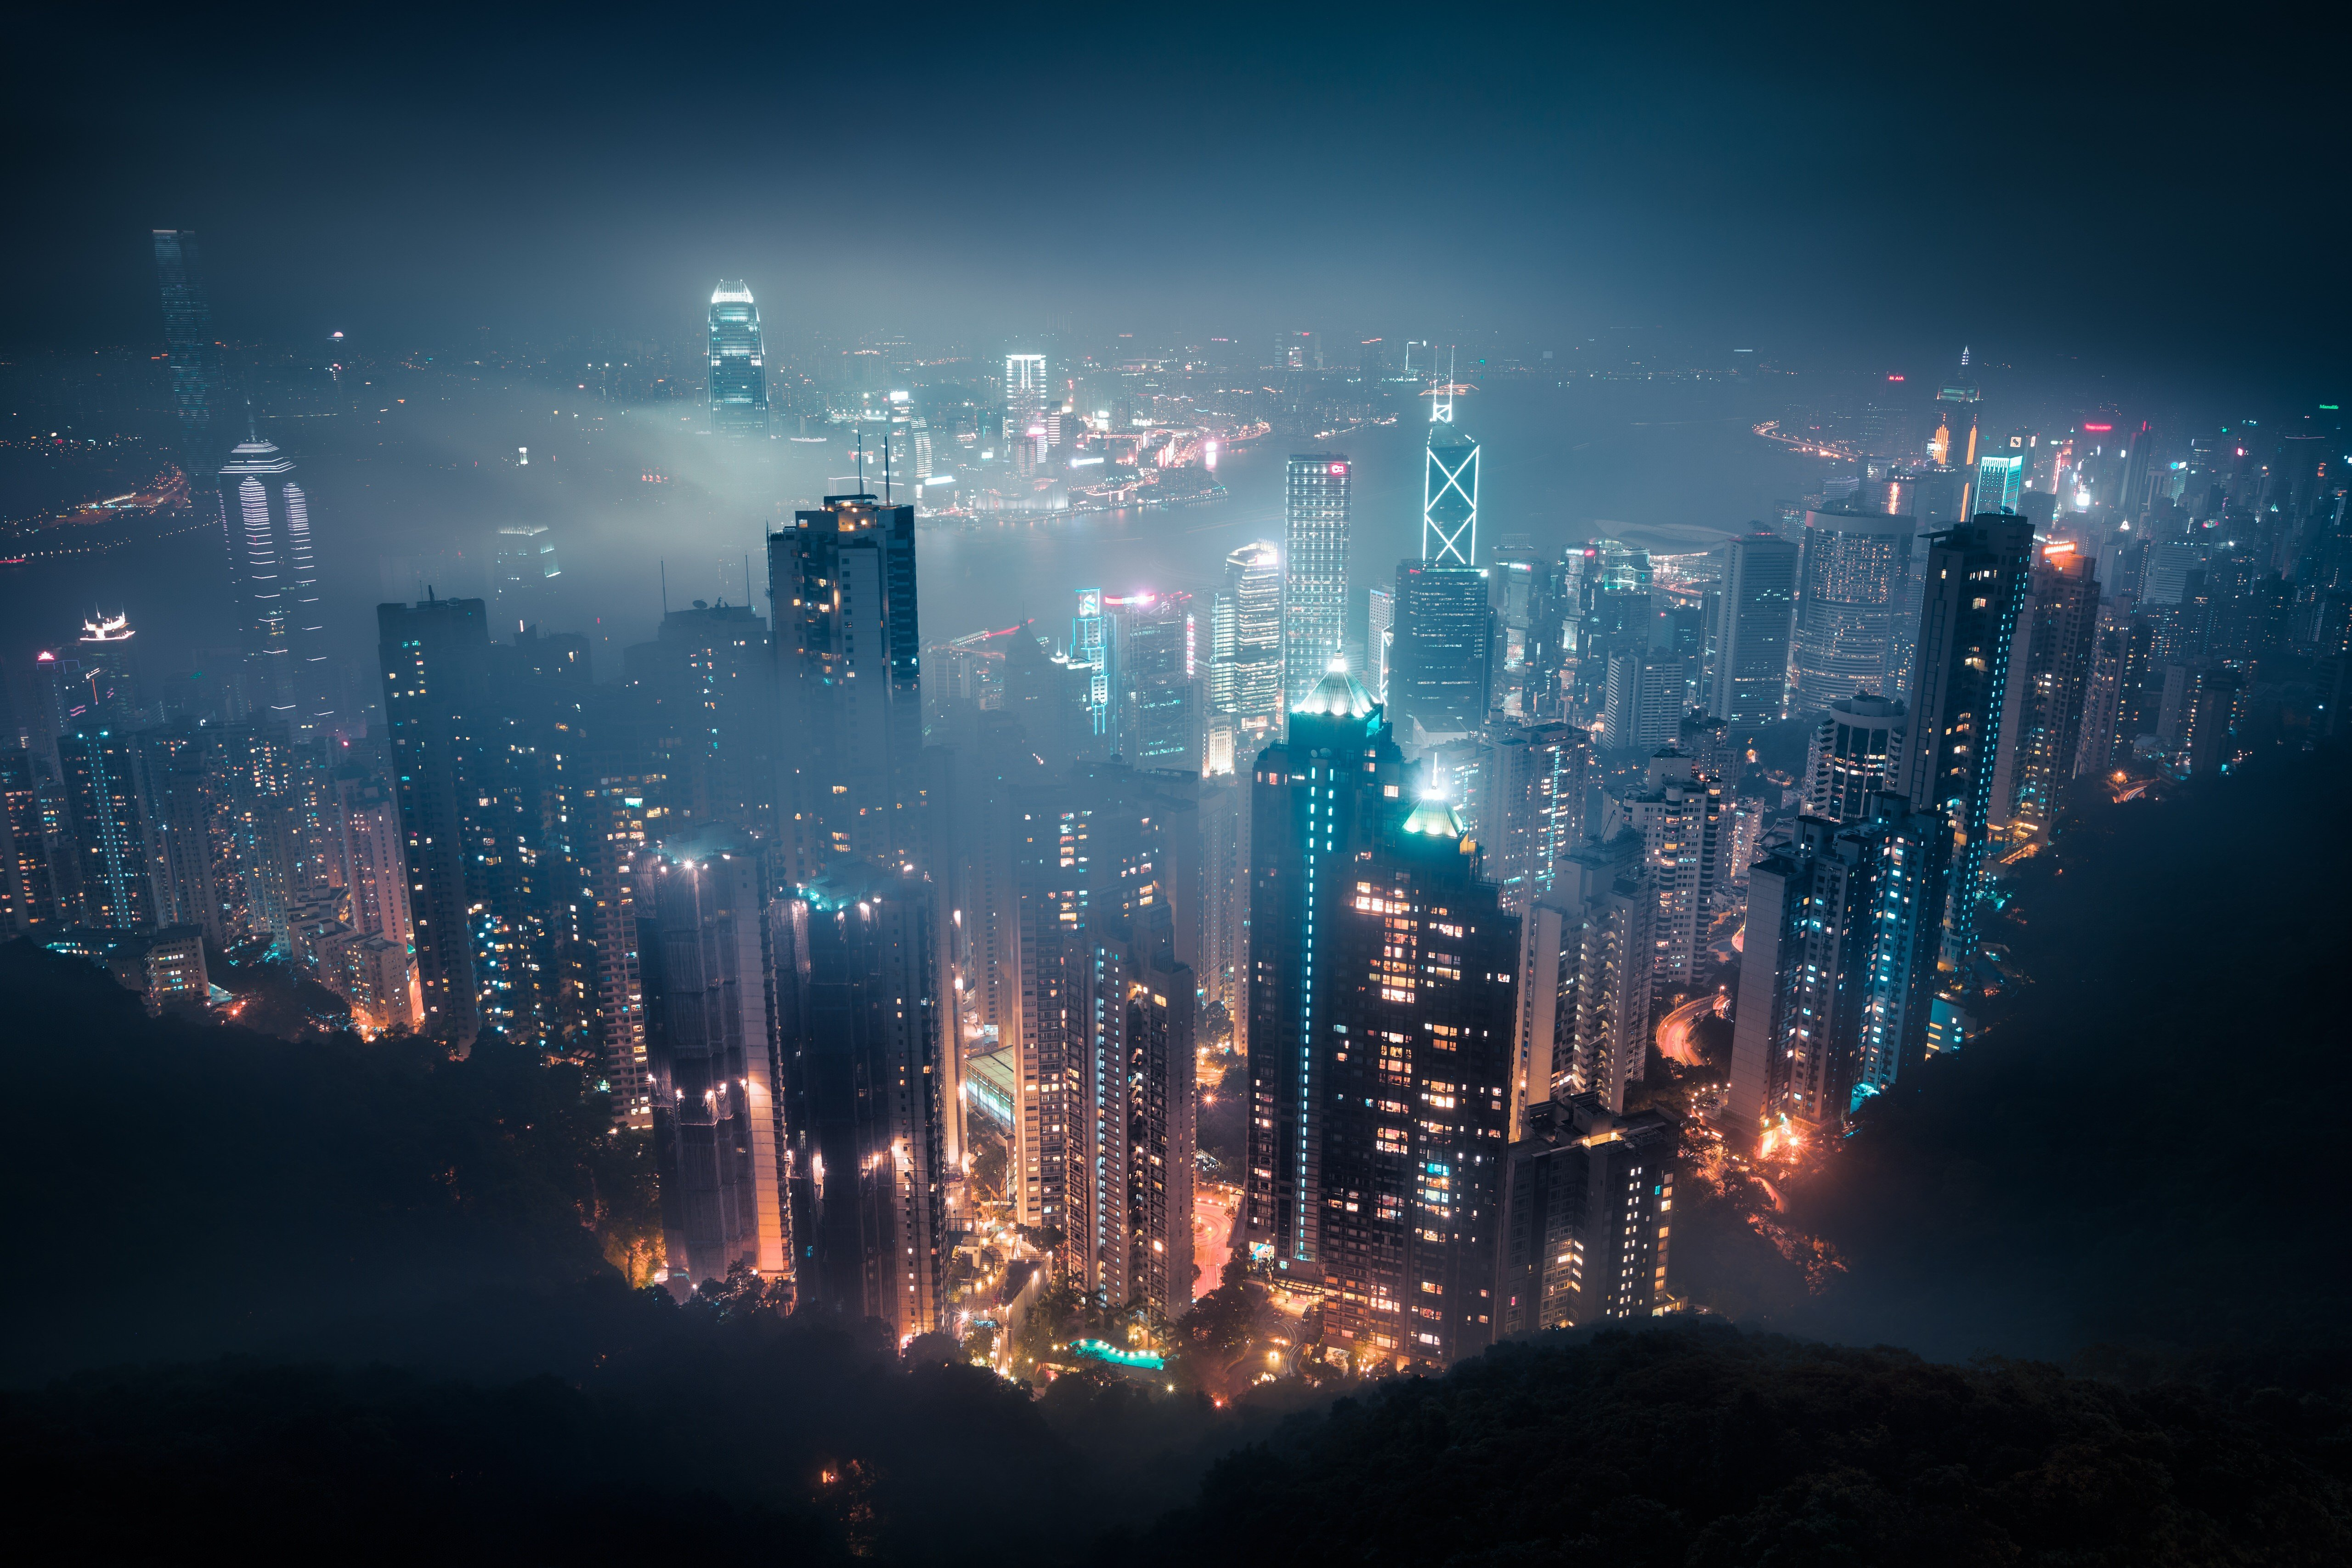 Hong Kong At Night 4k Wallpaper